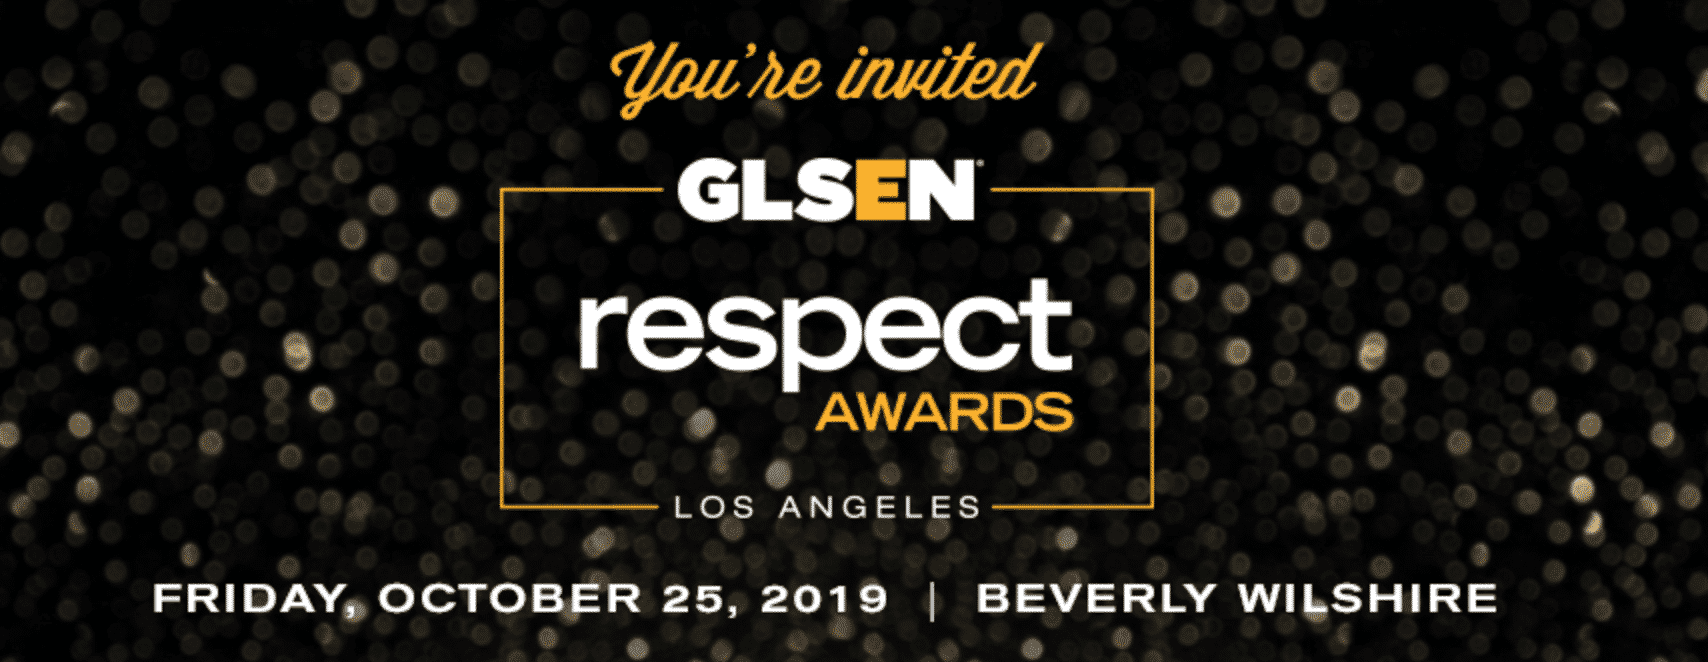 GLSEN Honors Tim Cook